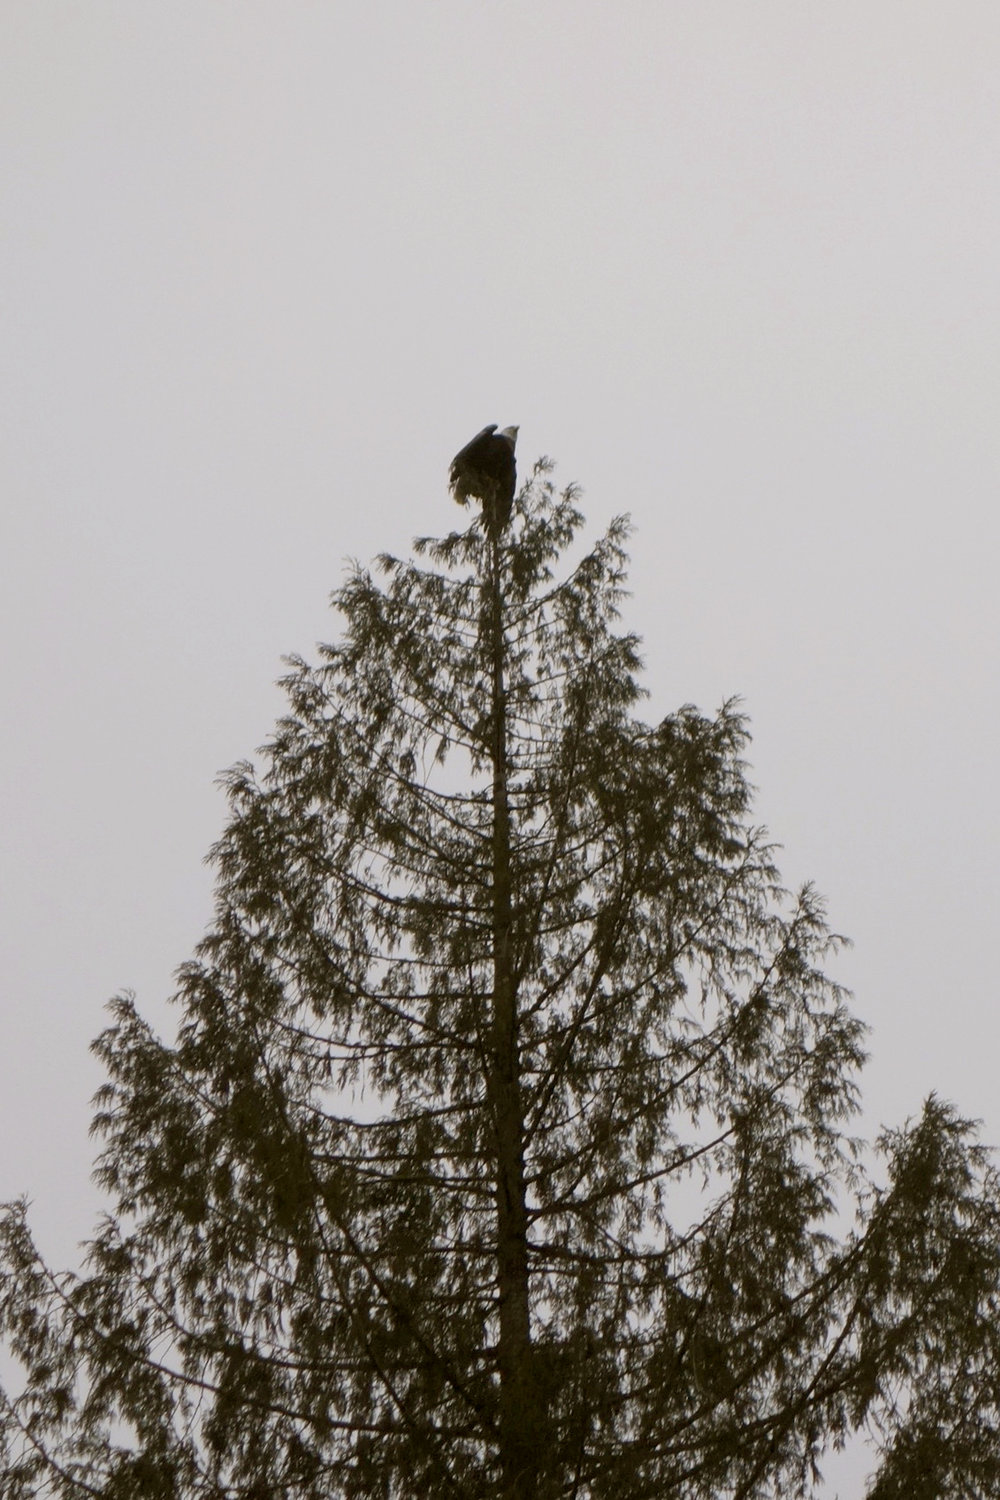 An eagle tops a tree on the Skagit River. Photo © Carol Ingram